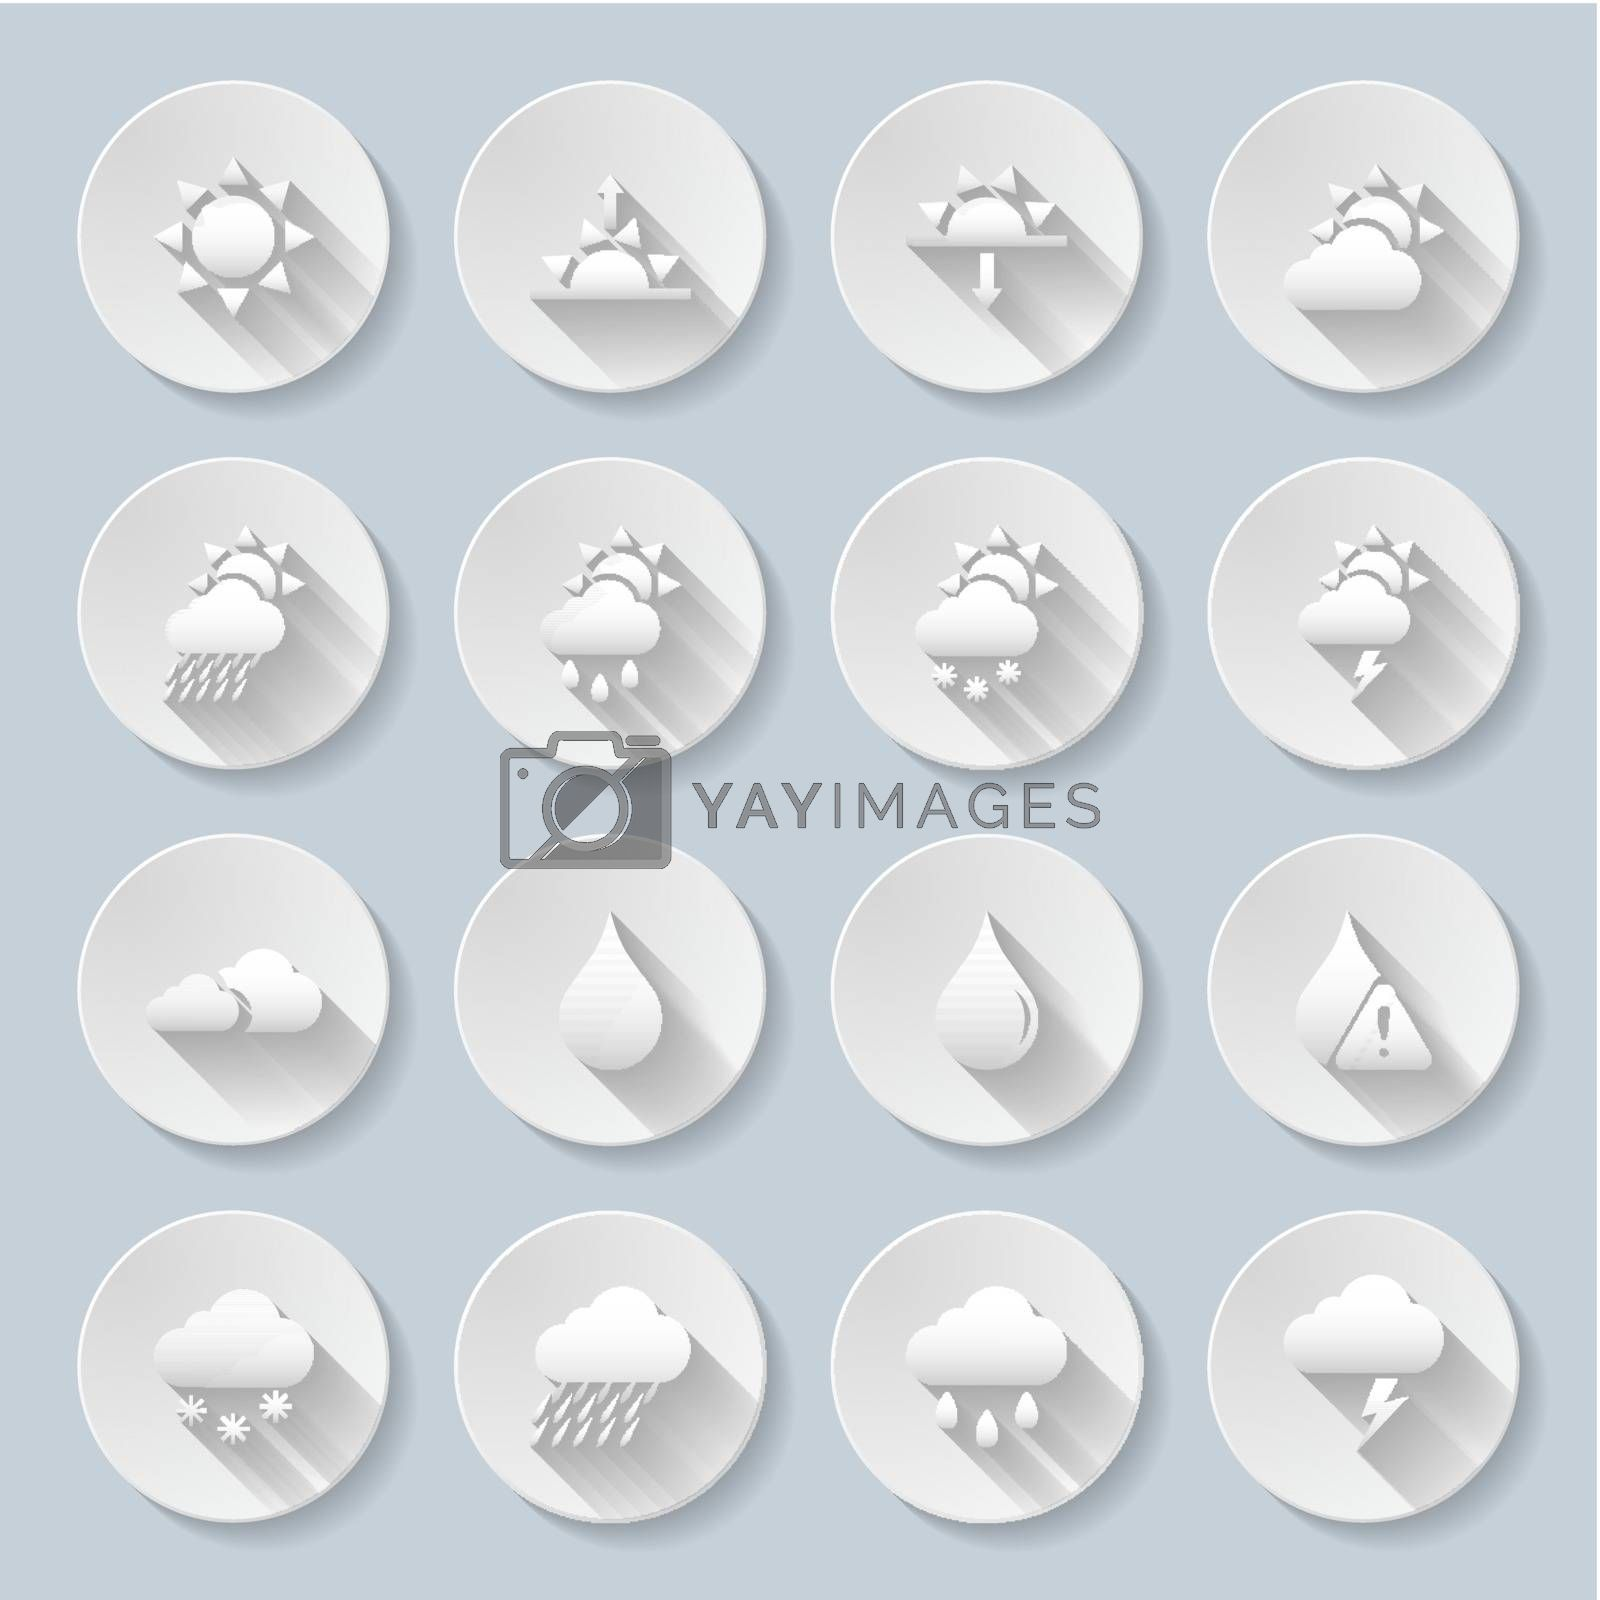 Weather Icon Set with sun,clouds,rain and snow using to describe a weather